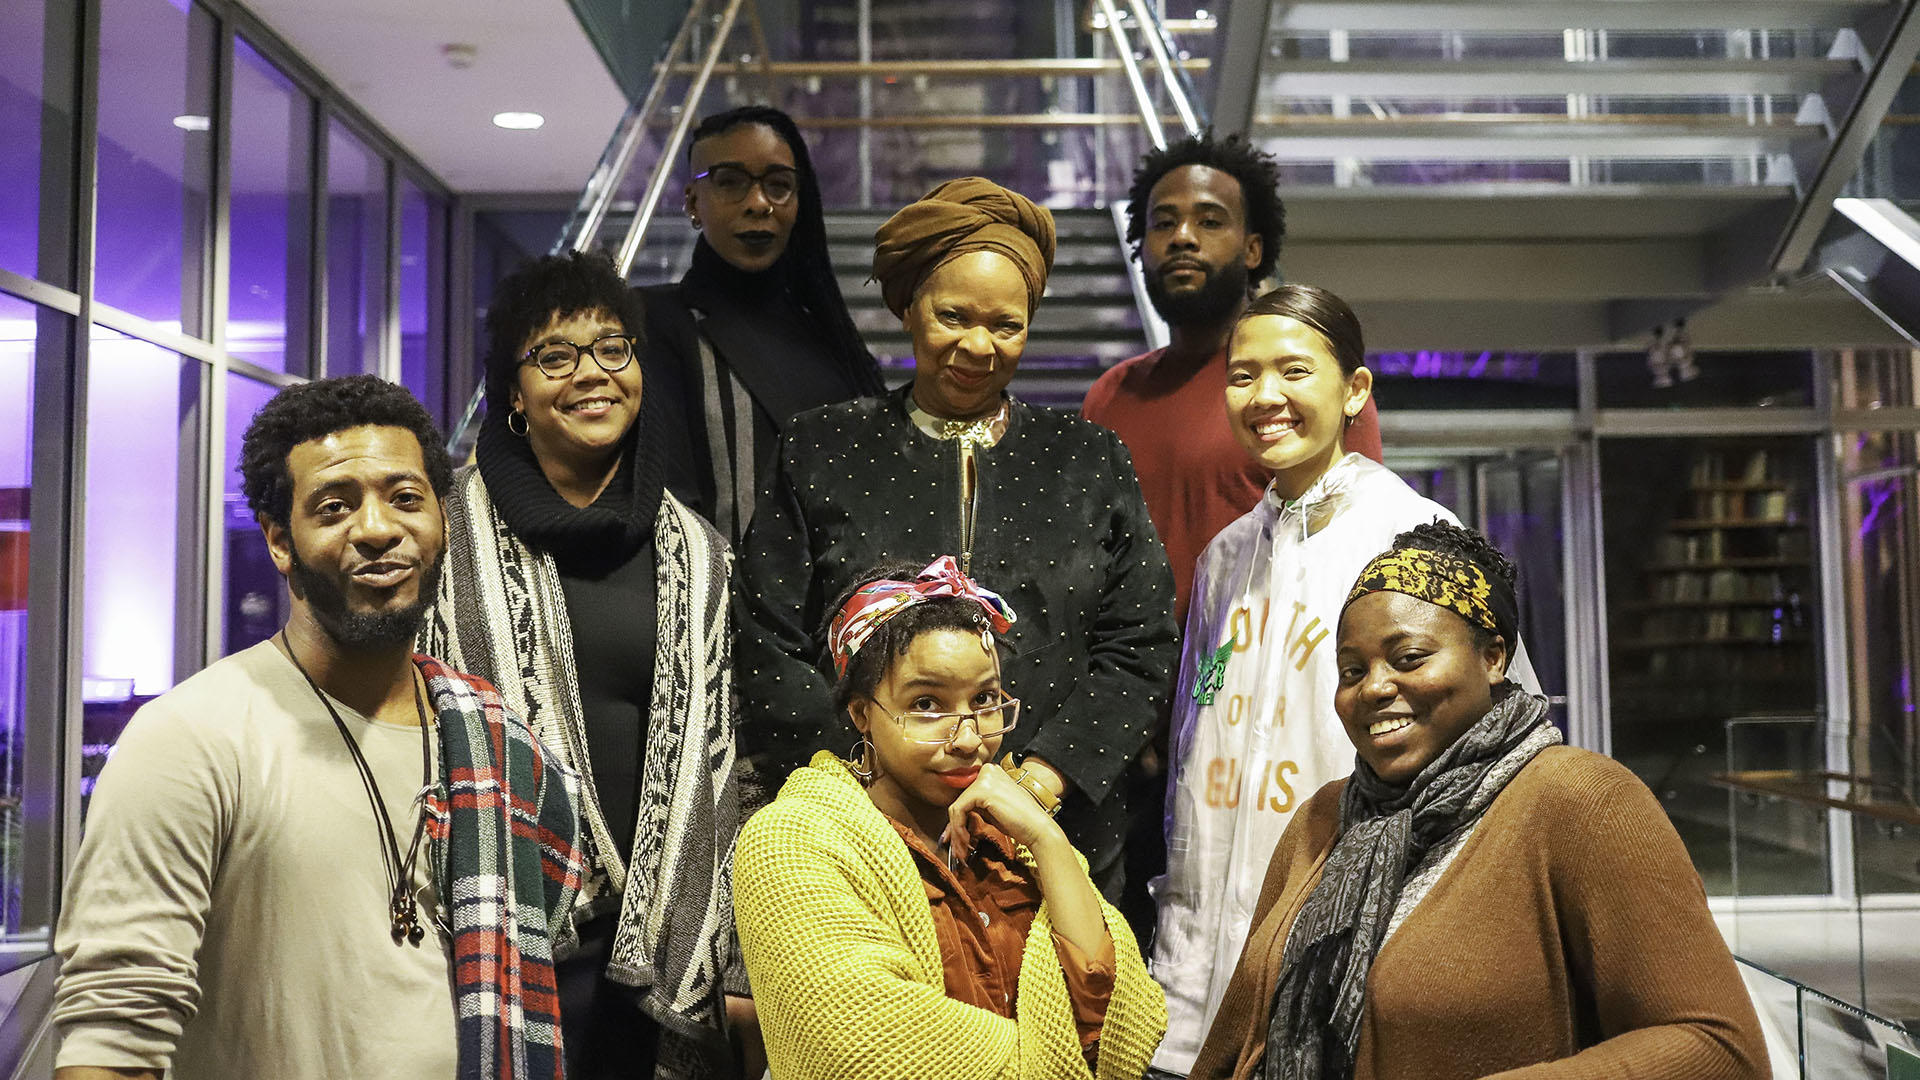 The Community Collaborators, photo by Carlie Febo